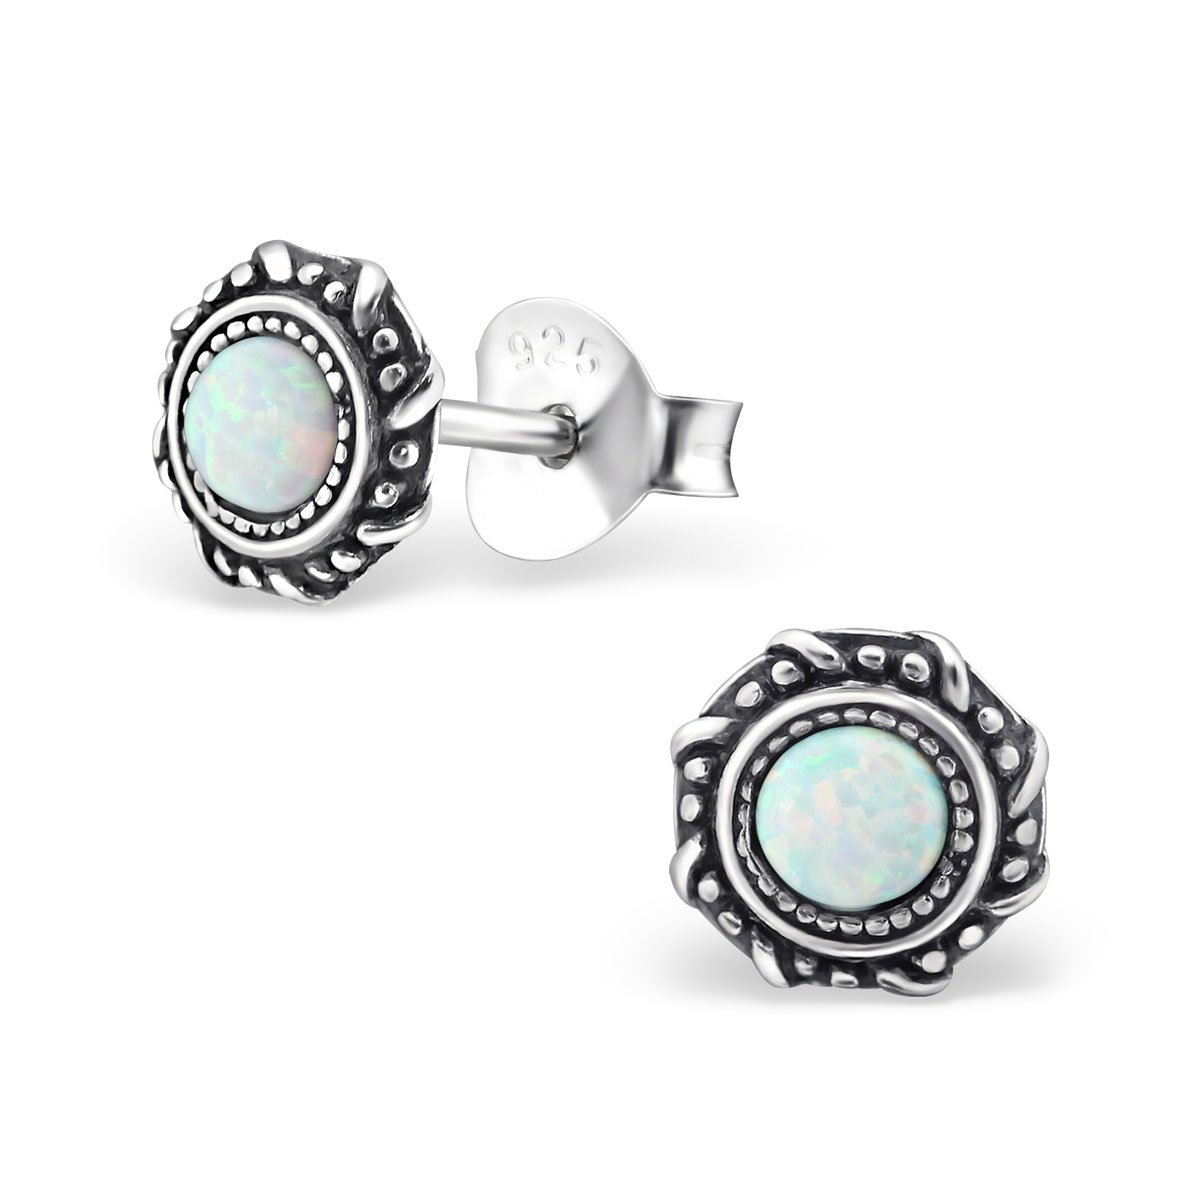 Small Round Blue Synthetic Opal Silver Earrings Vintage Antique Style Stering Silver 925 Post Studs (E23674) (Fire Snow)